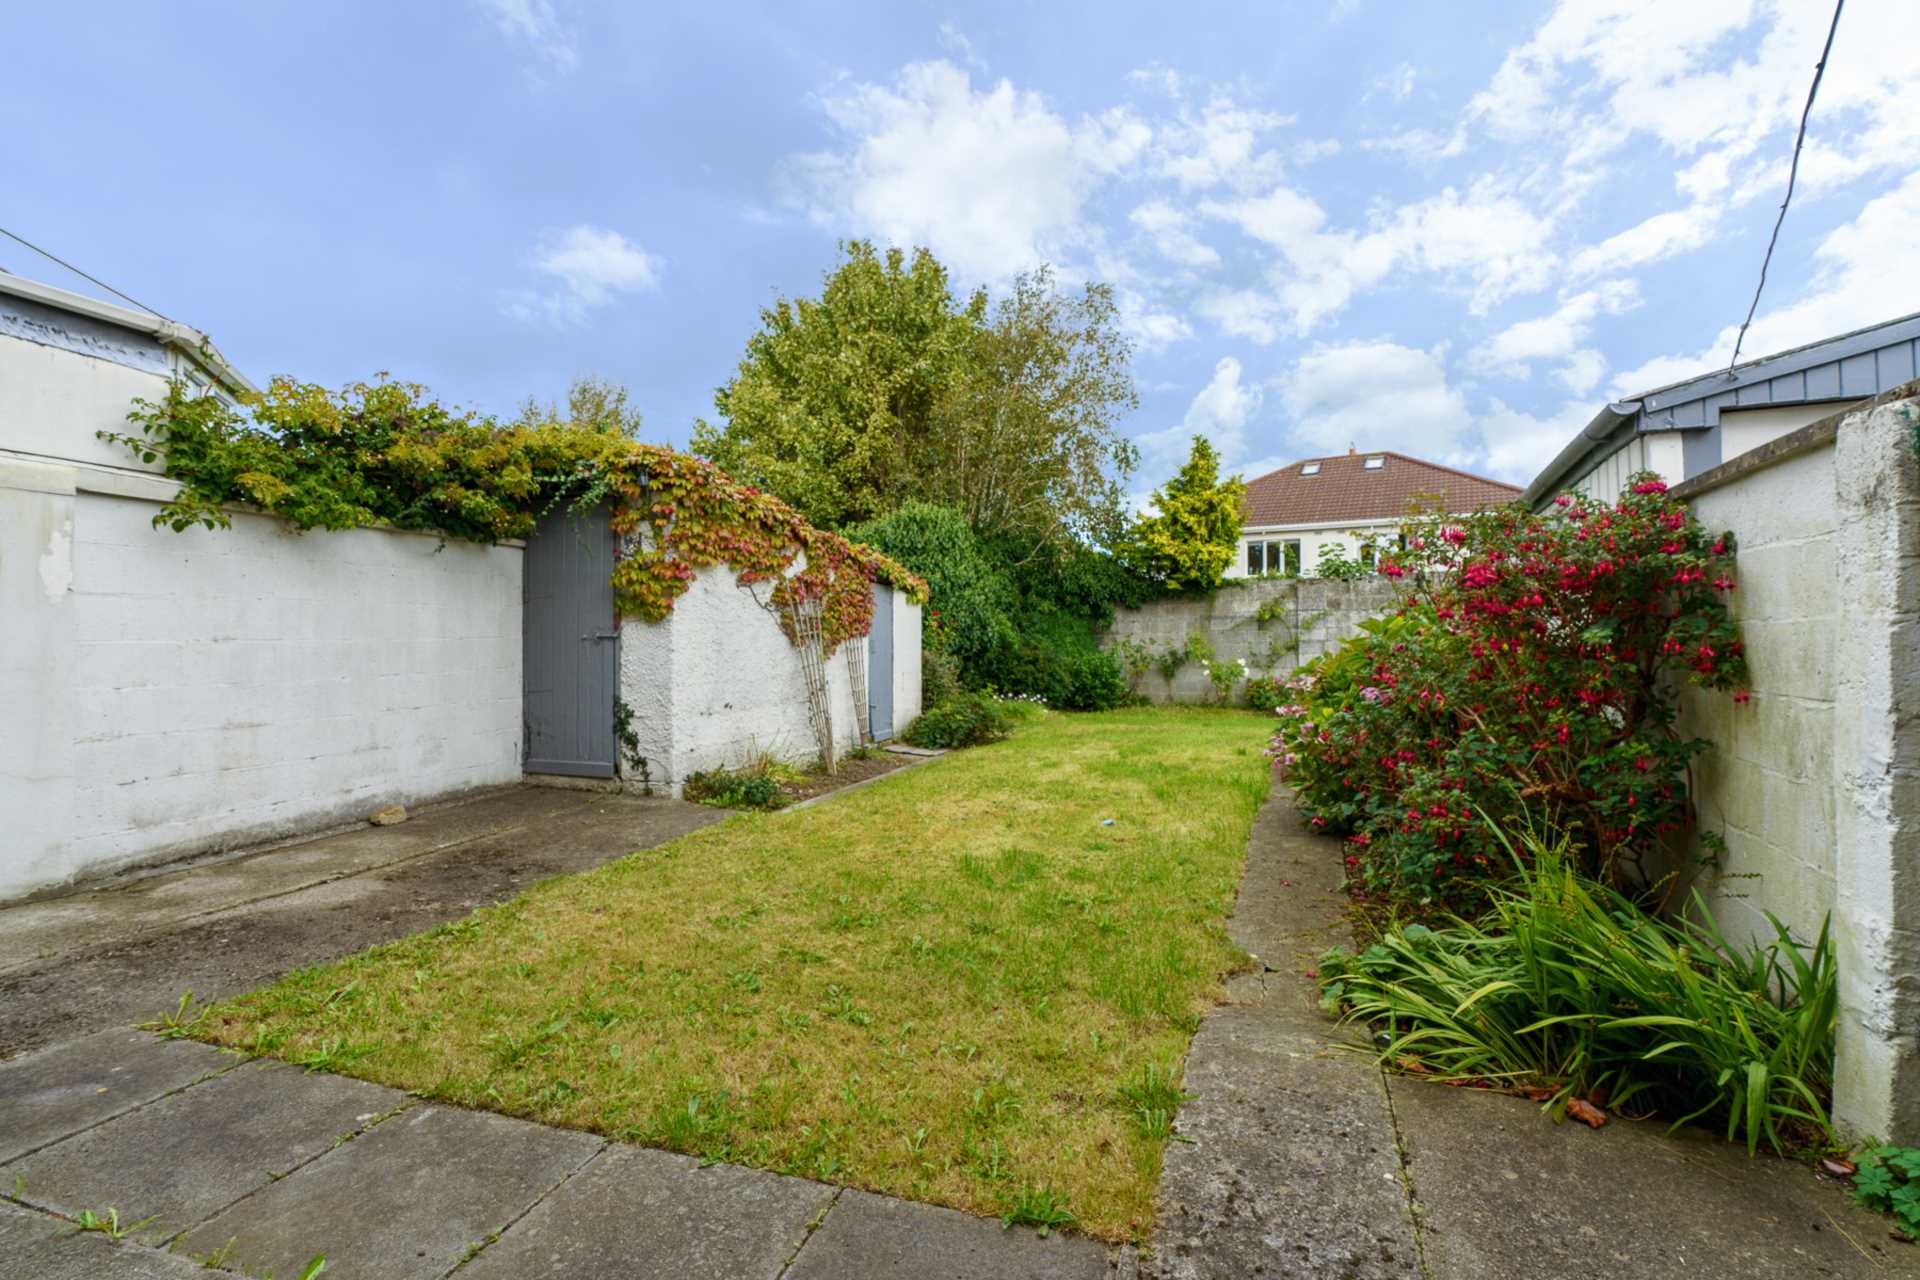 57 Seafield Crescent, Booterstown, Co Dublin, Image 17